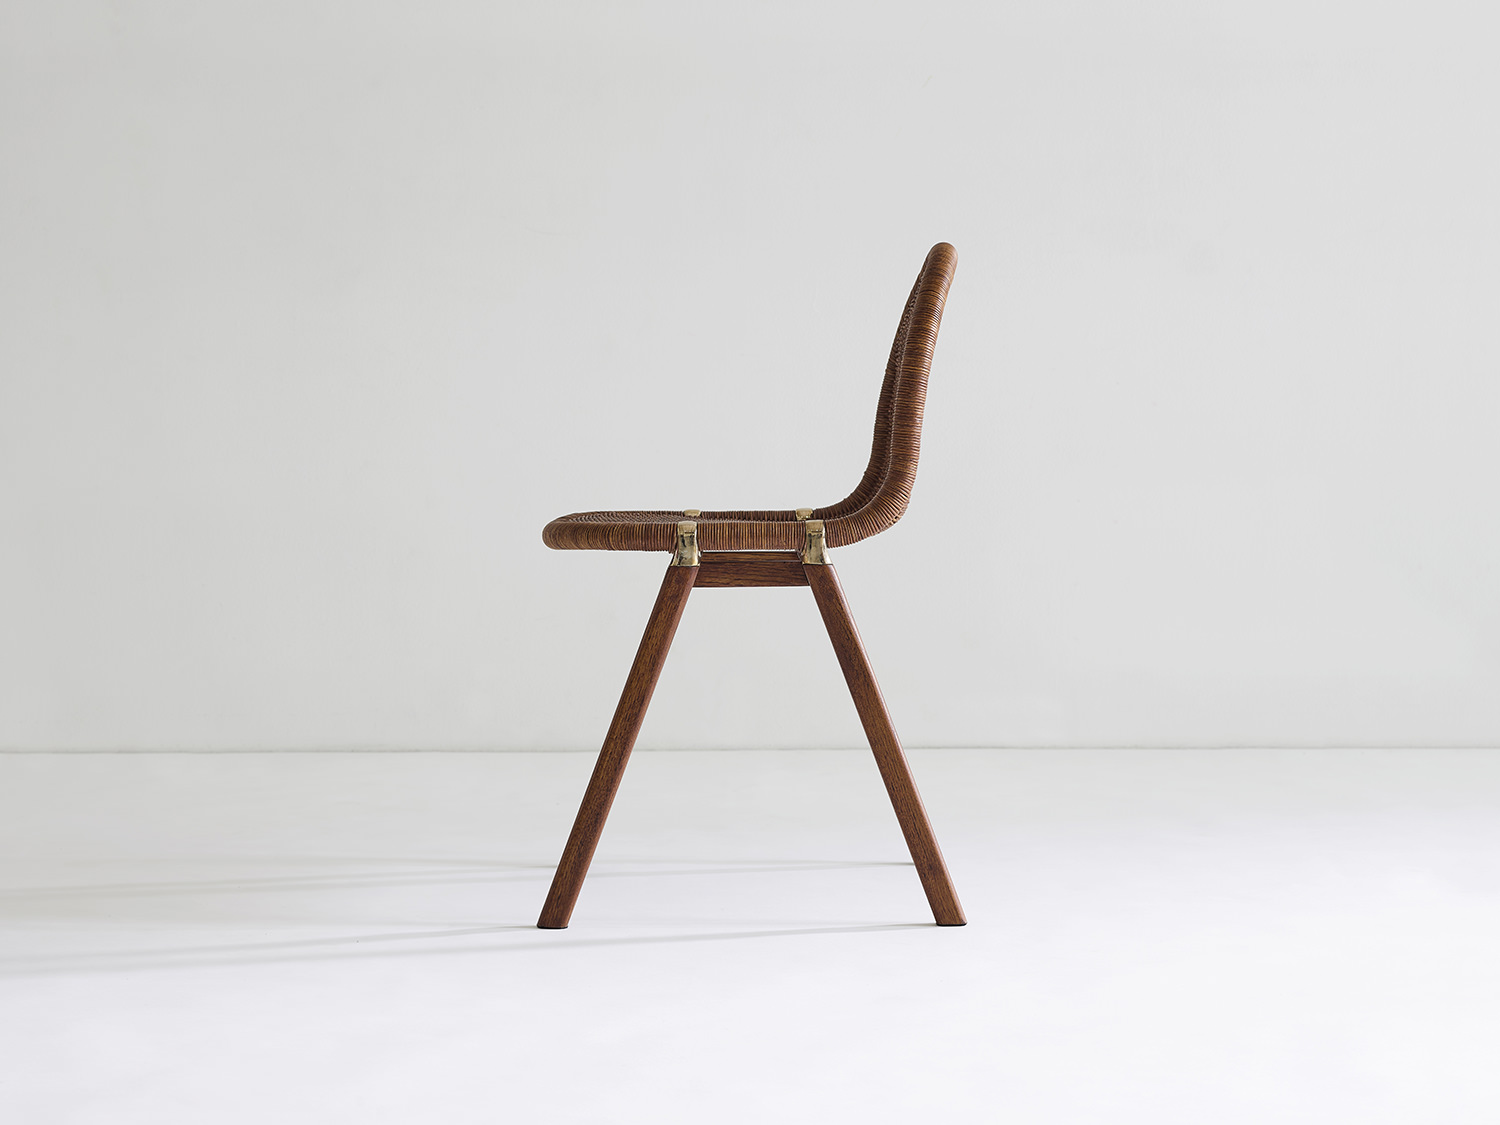 Thong lor chair side cropped sm.jpg